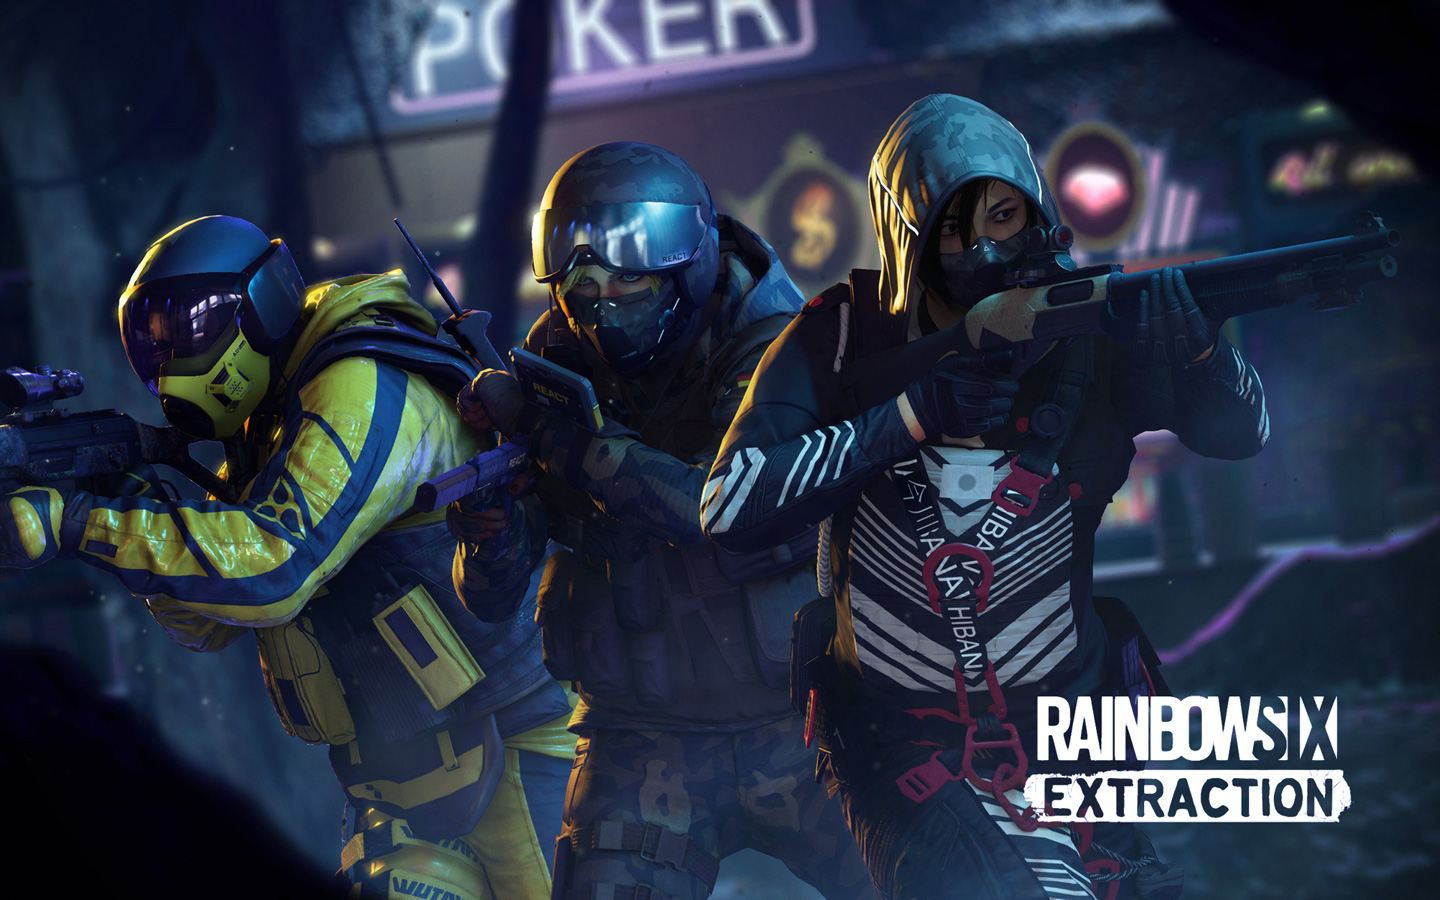 Free Rainbow Six Extraction Wallpaper in 1440x900